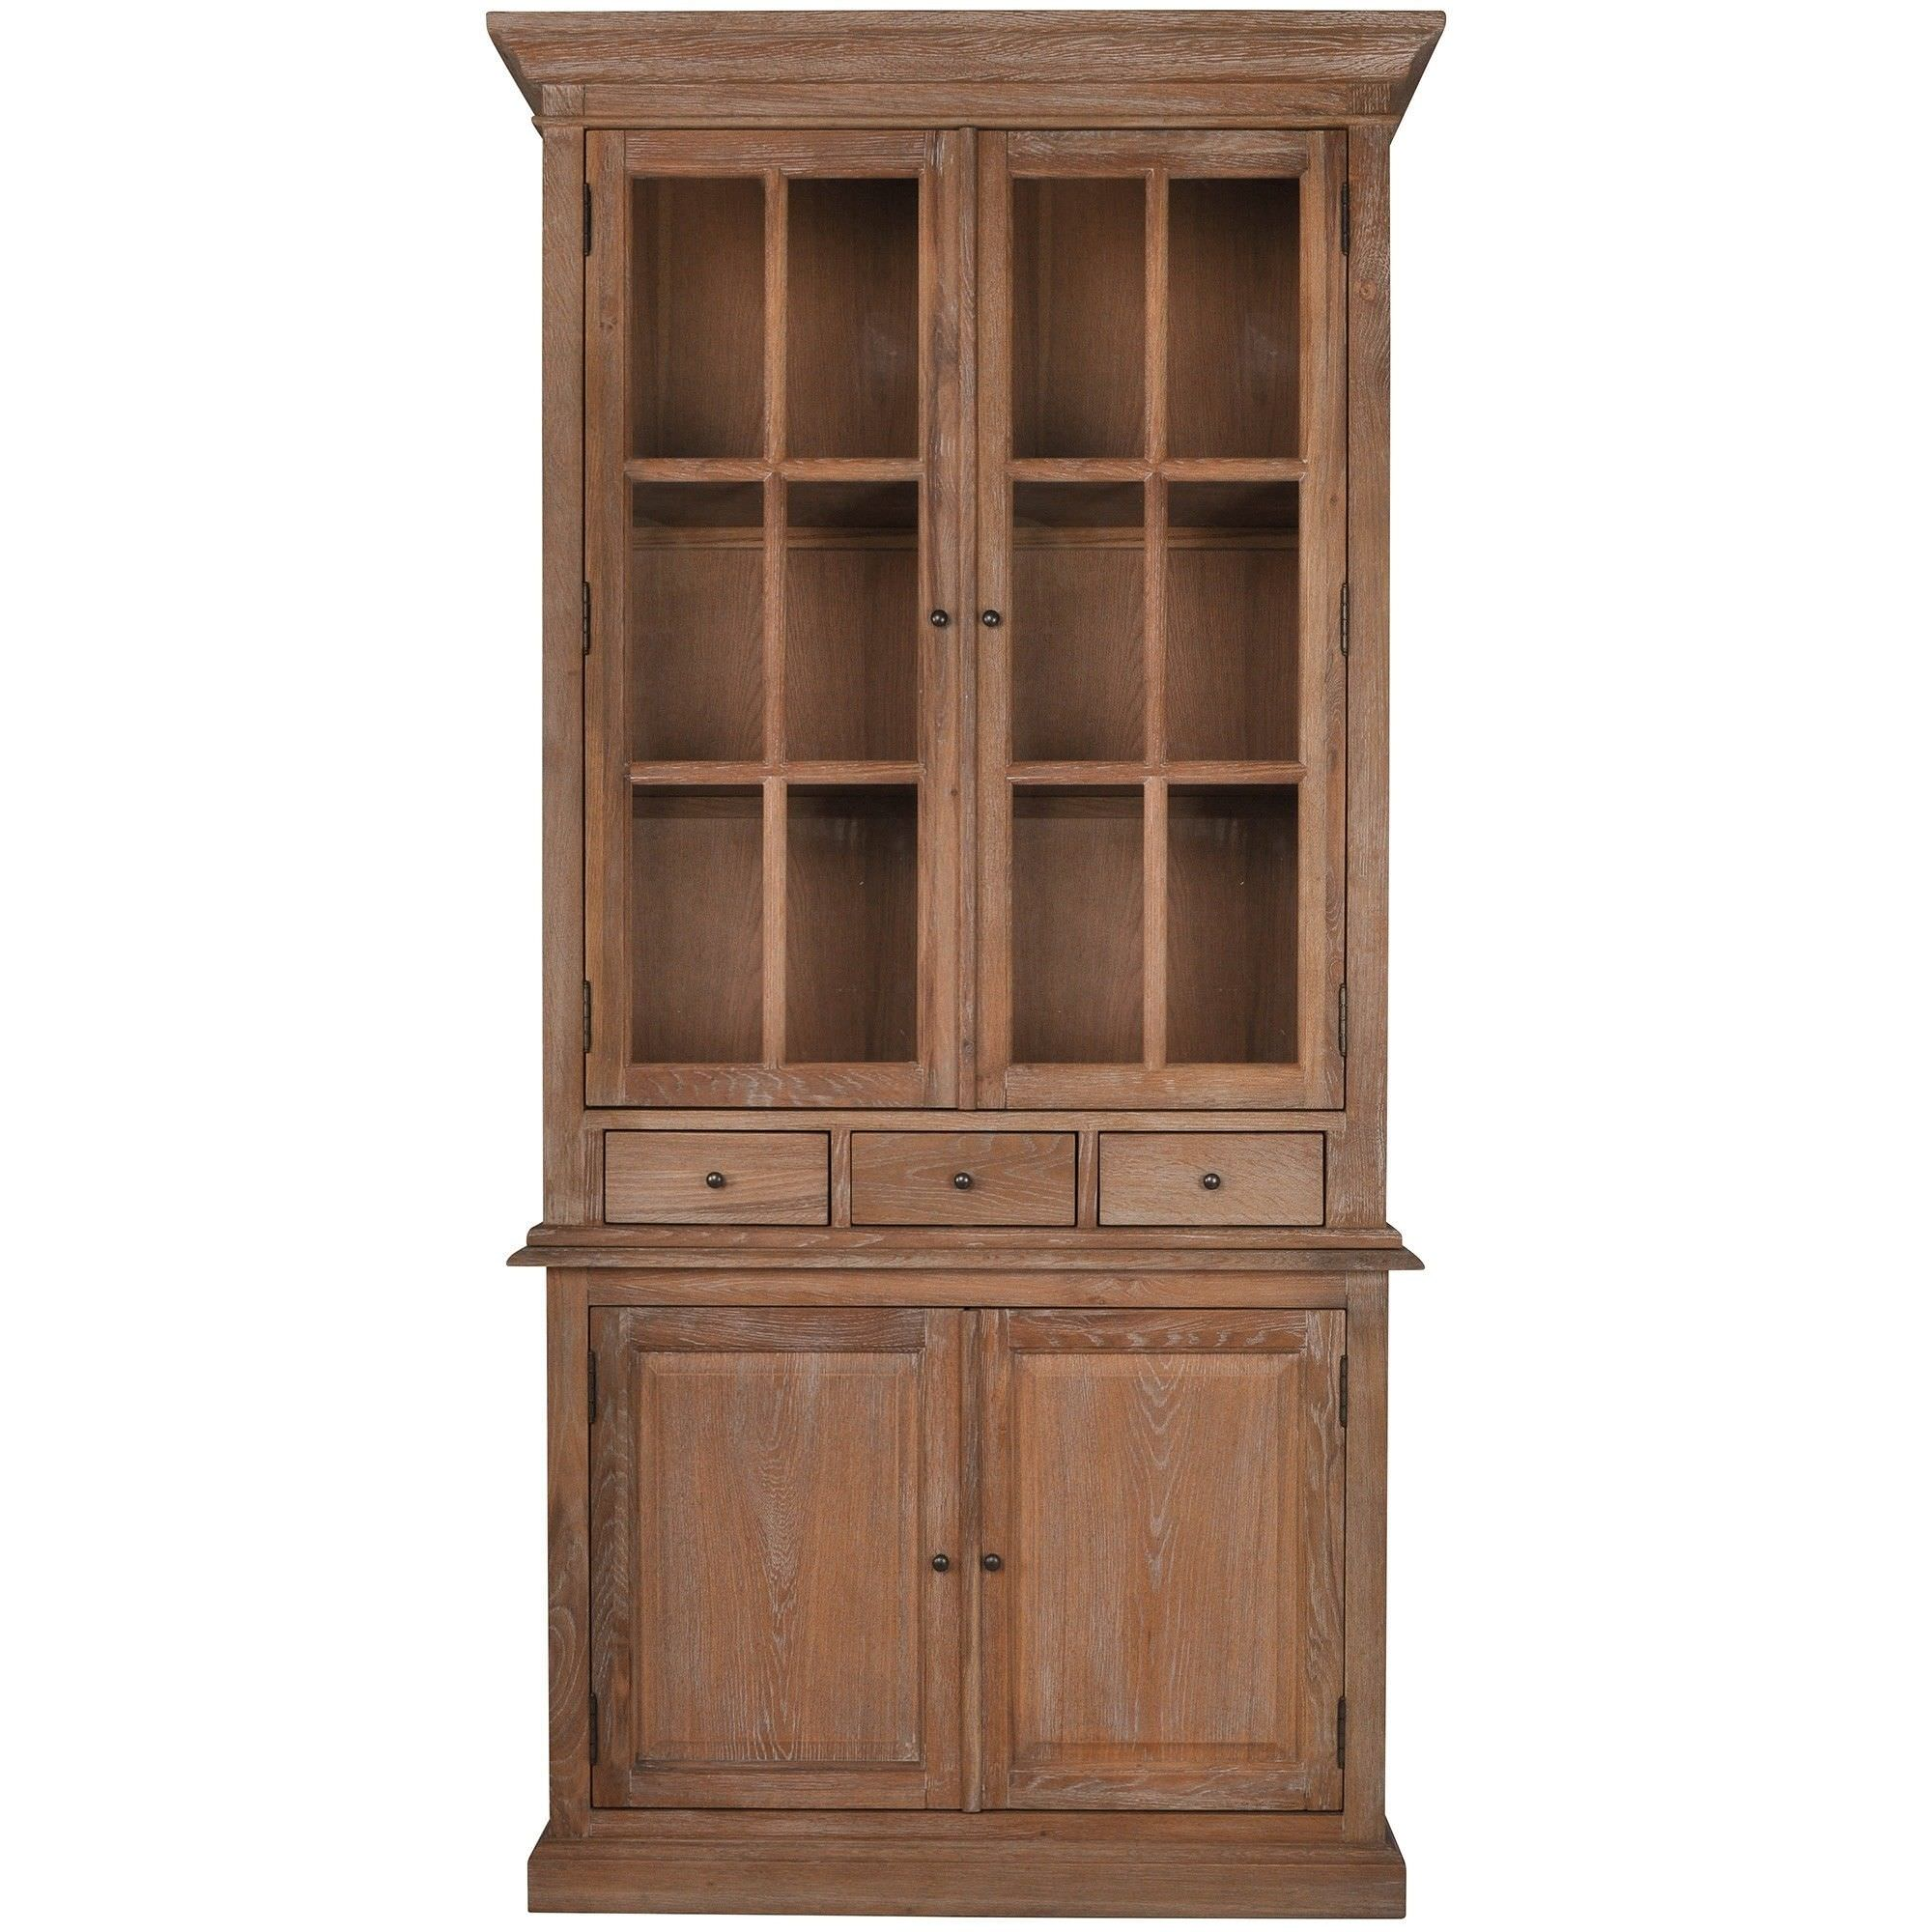 size photos style rustic and cabinet cabinets china cheap modern of photosesign hutchesmodern striking design full cabinetchina designsblack cabinetmodern buffetsmodern designs